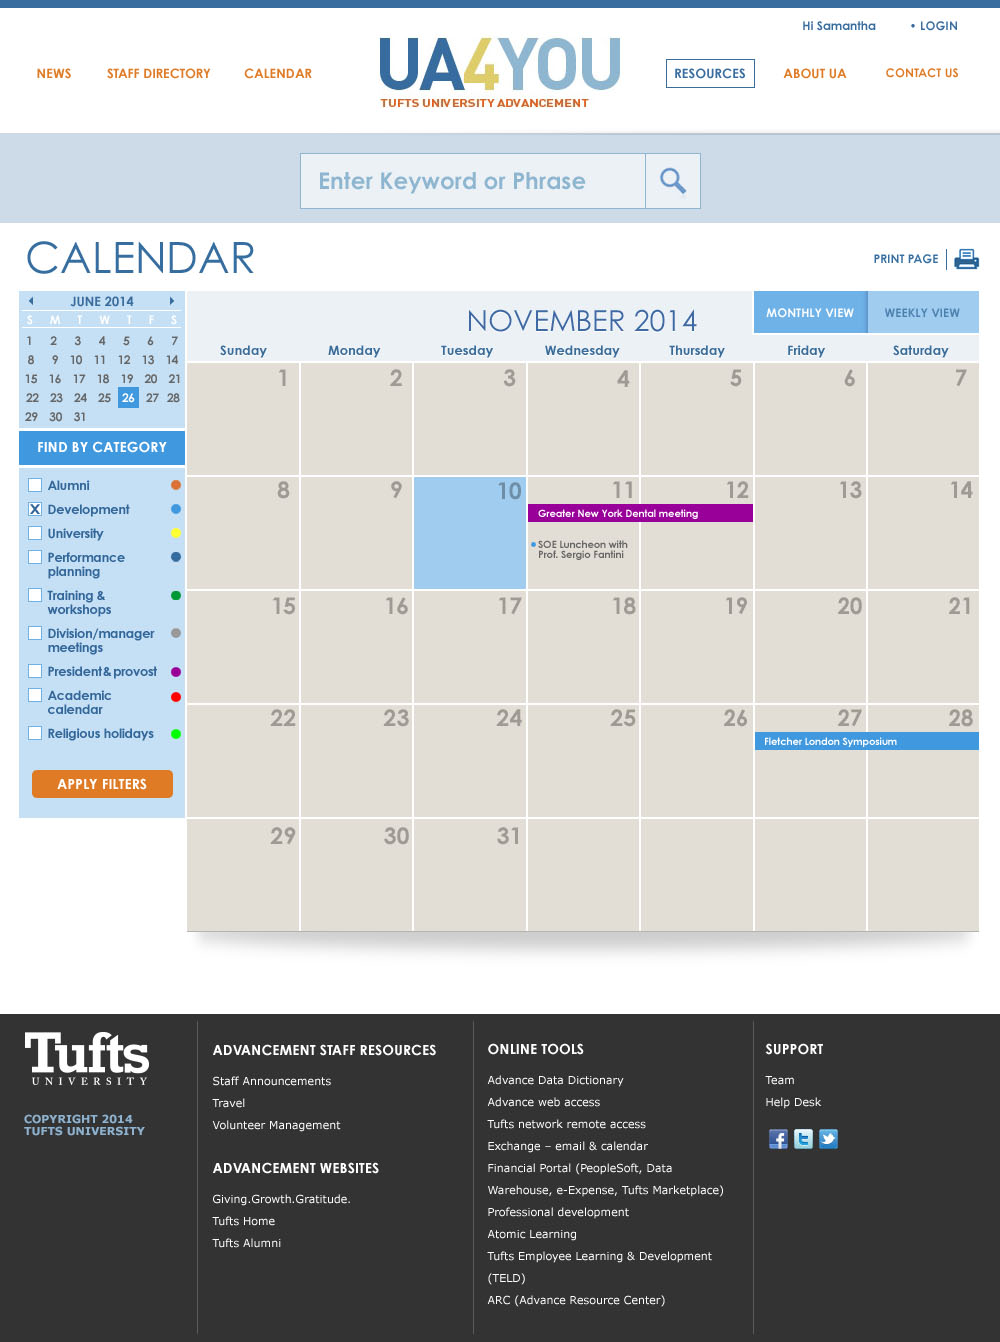 Tufts University - UA4YOU screen shot